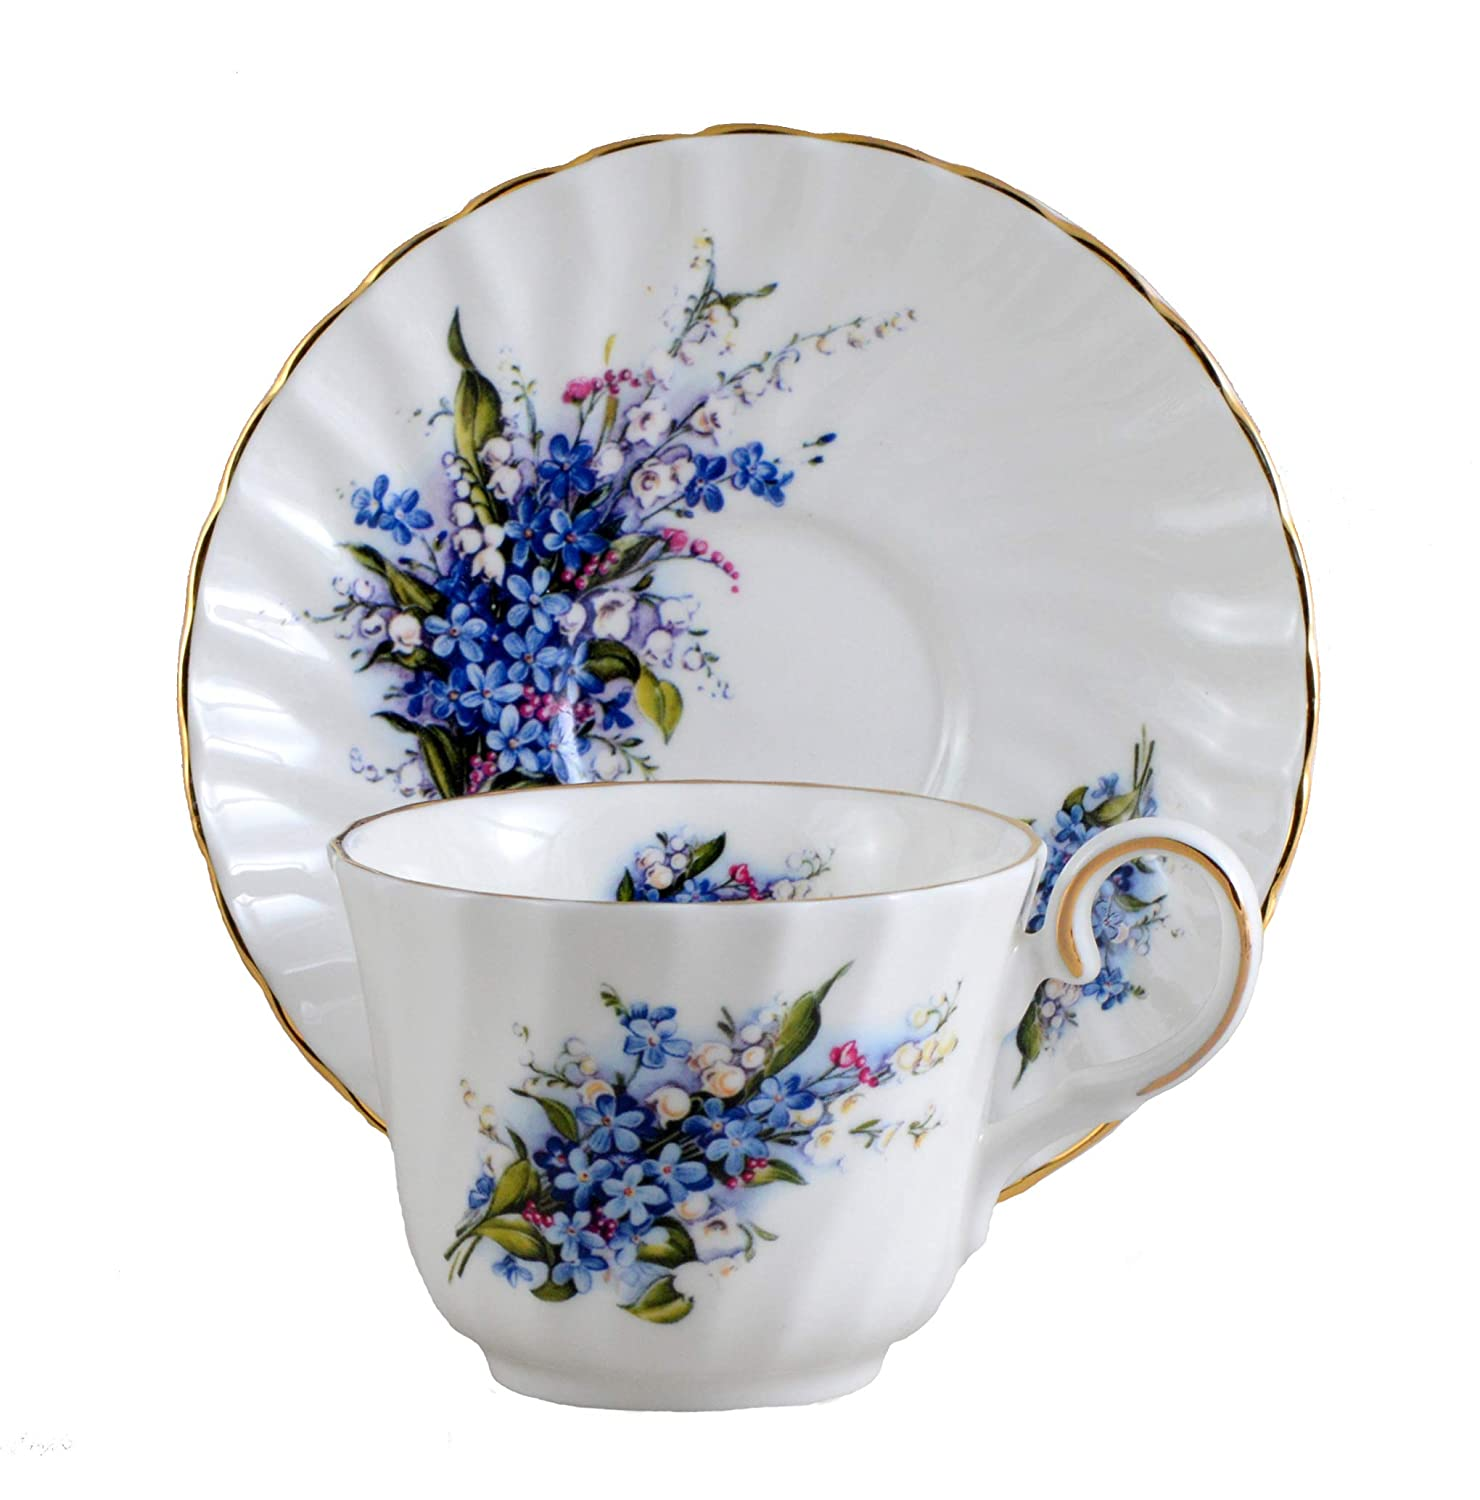 Forget Me Not Cup & Saucer - English Bone China Imperial Porcelain Teaware